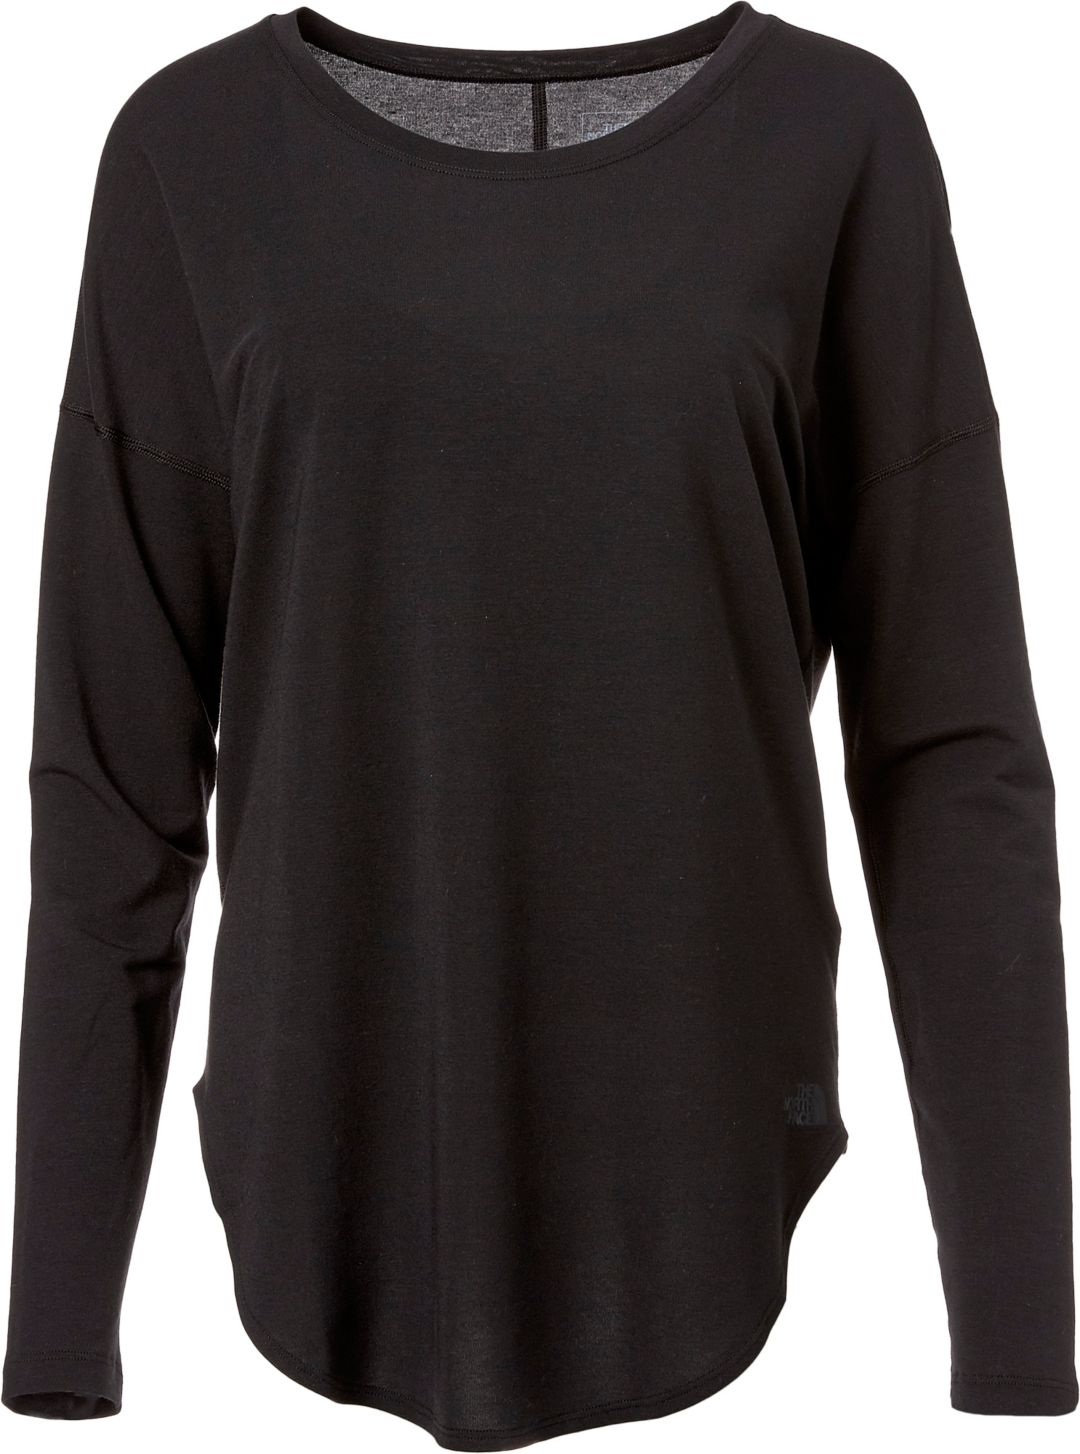 cfdacbee7 The North Face Women's Workout Long Sleeve Shirt